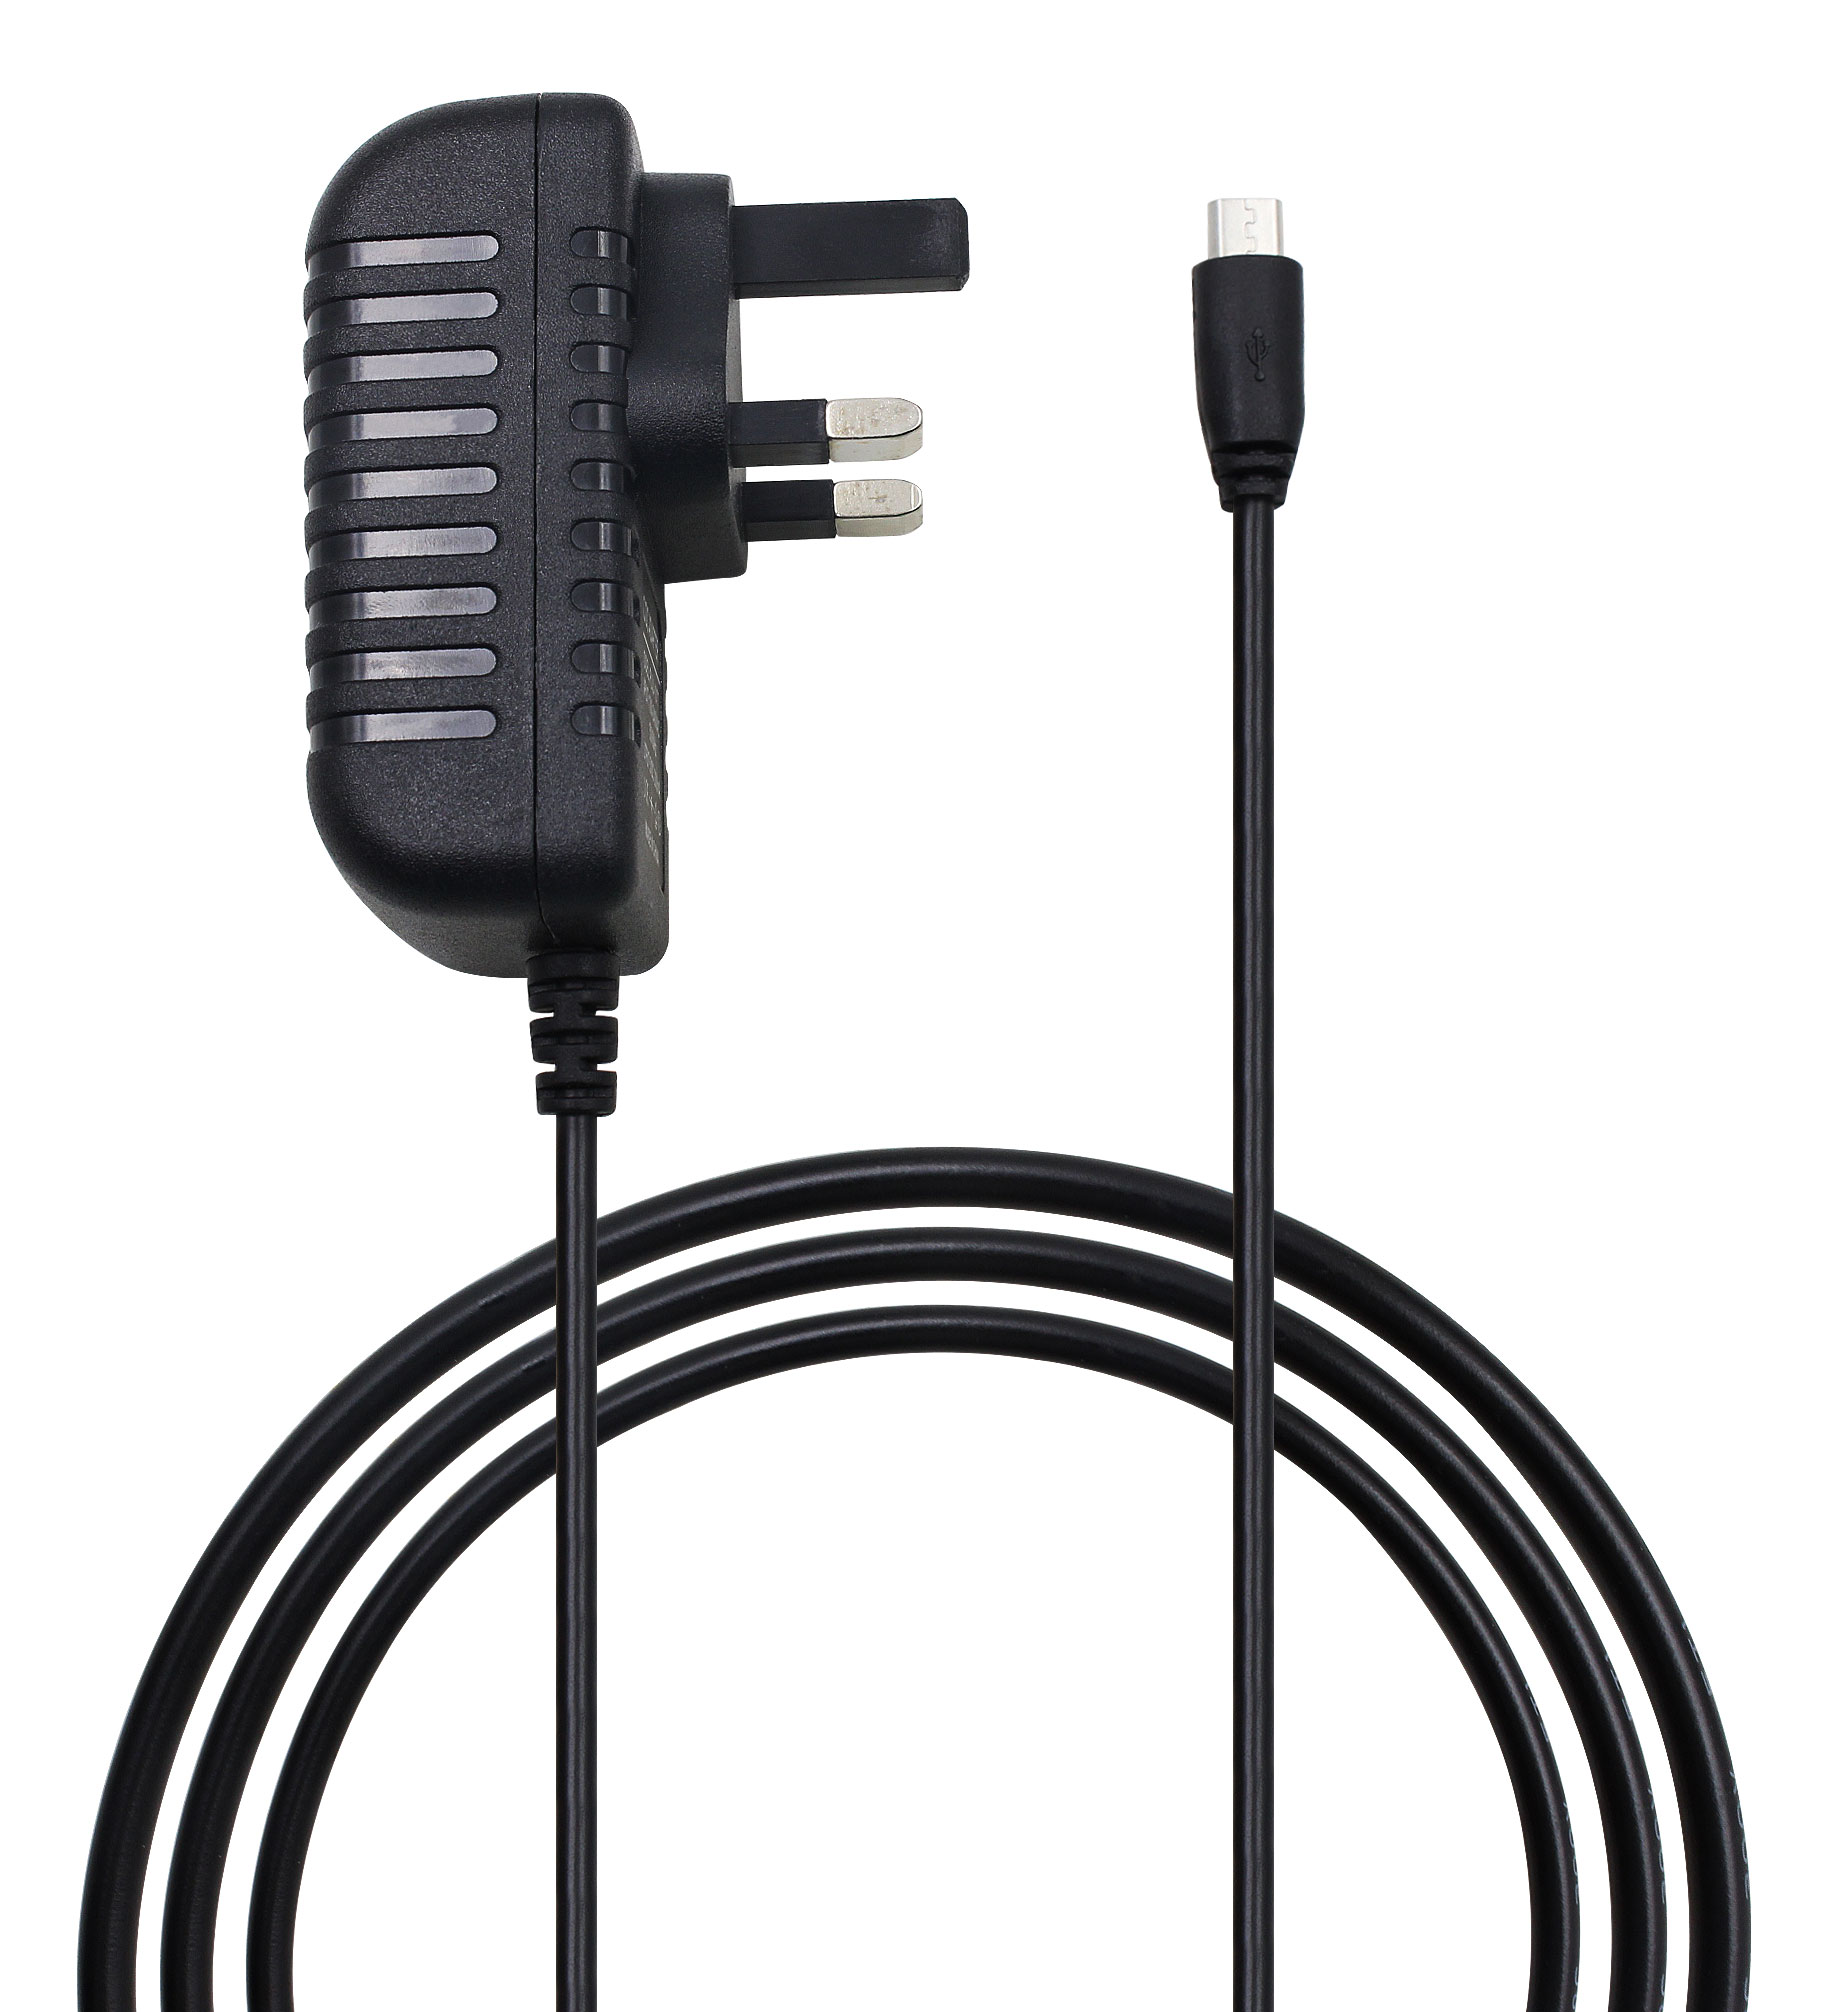 UK 2A HIGH POWER MAINS CHARGER FIT Linx 12X64 12 5-2 in 1 Laptop